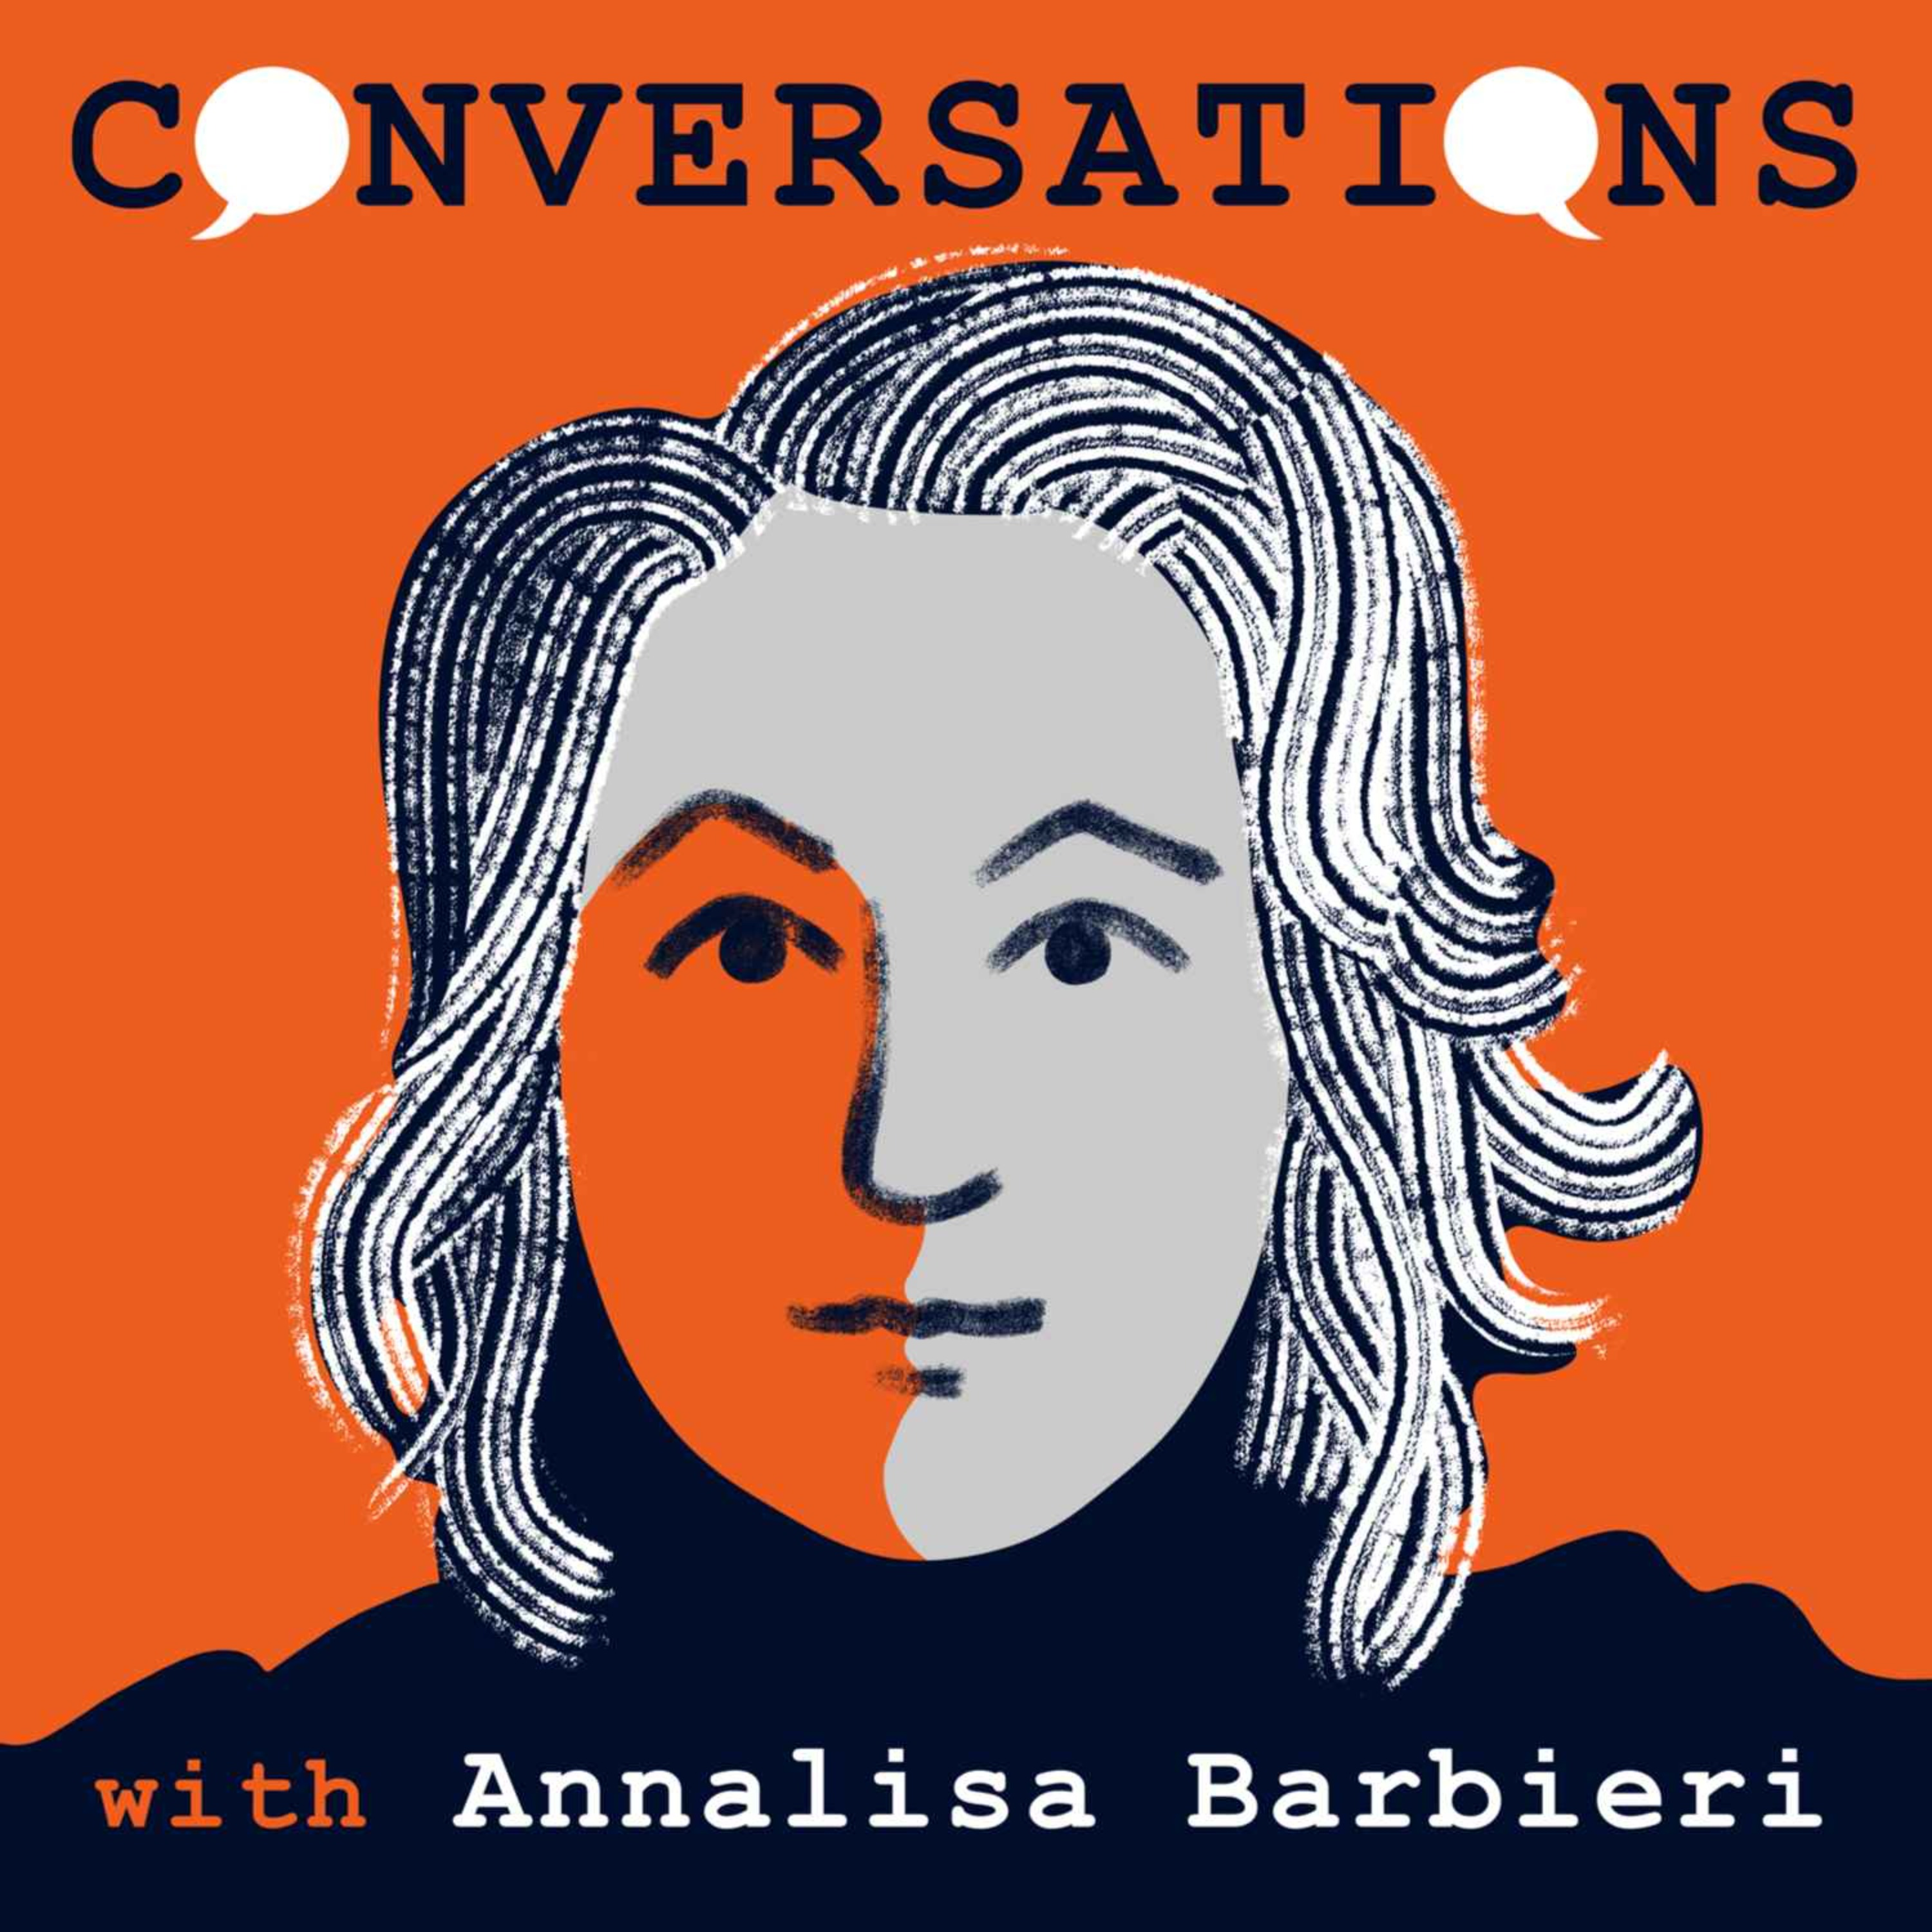 Conversations with Annalisa Barbieri podcast show image